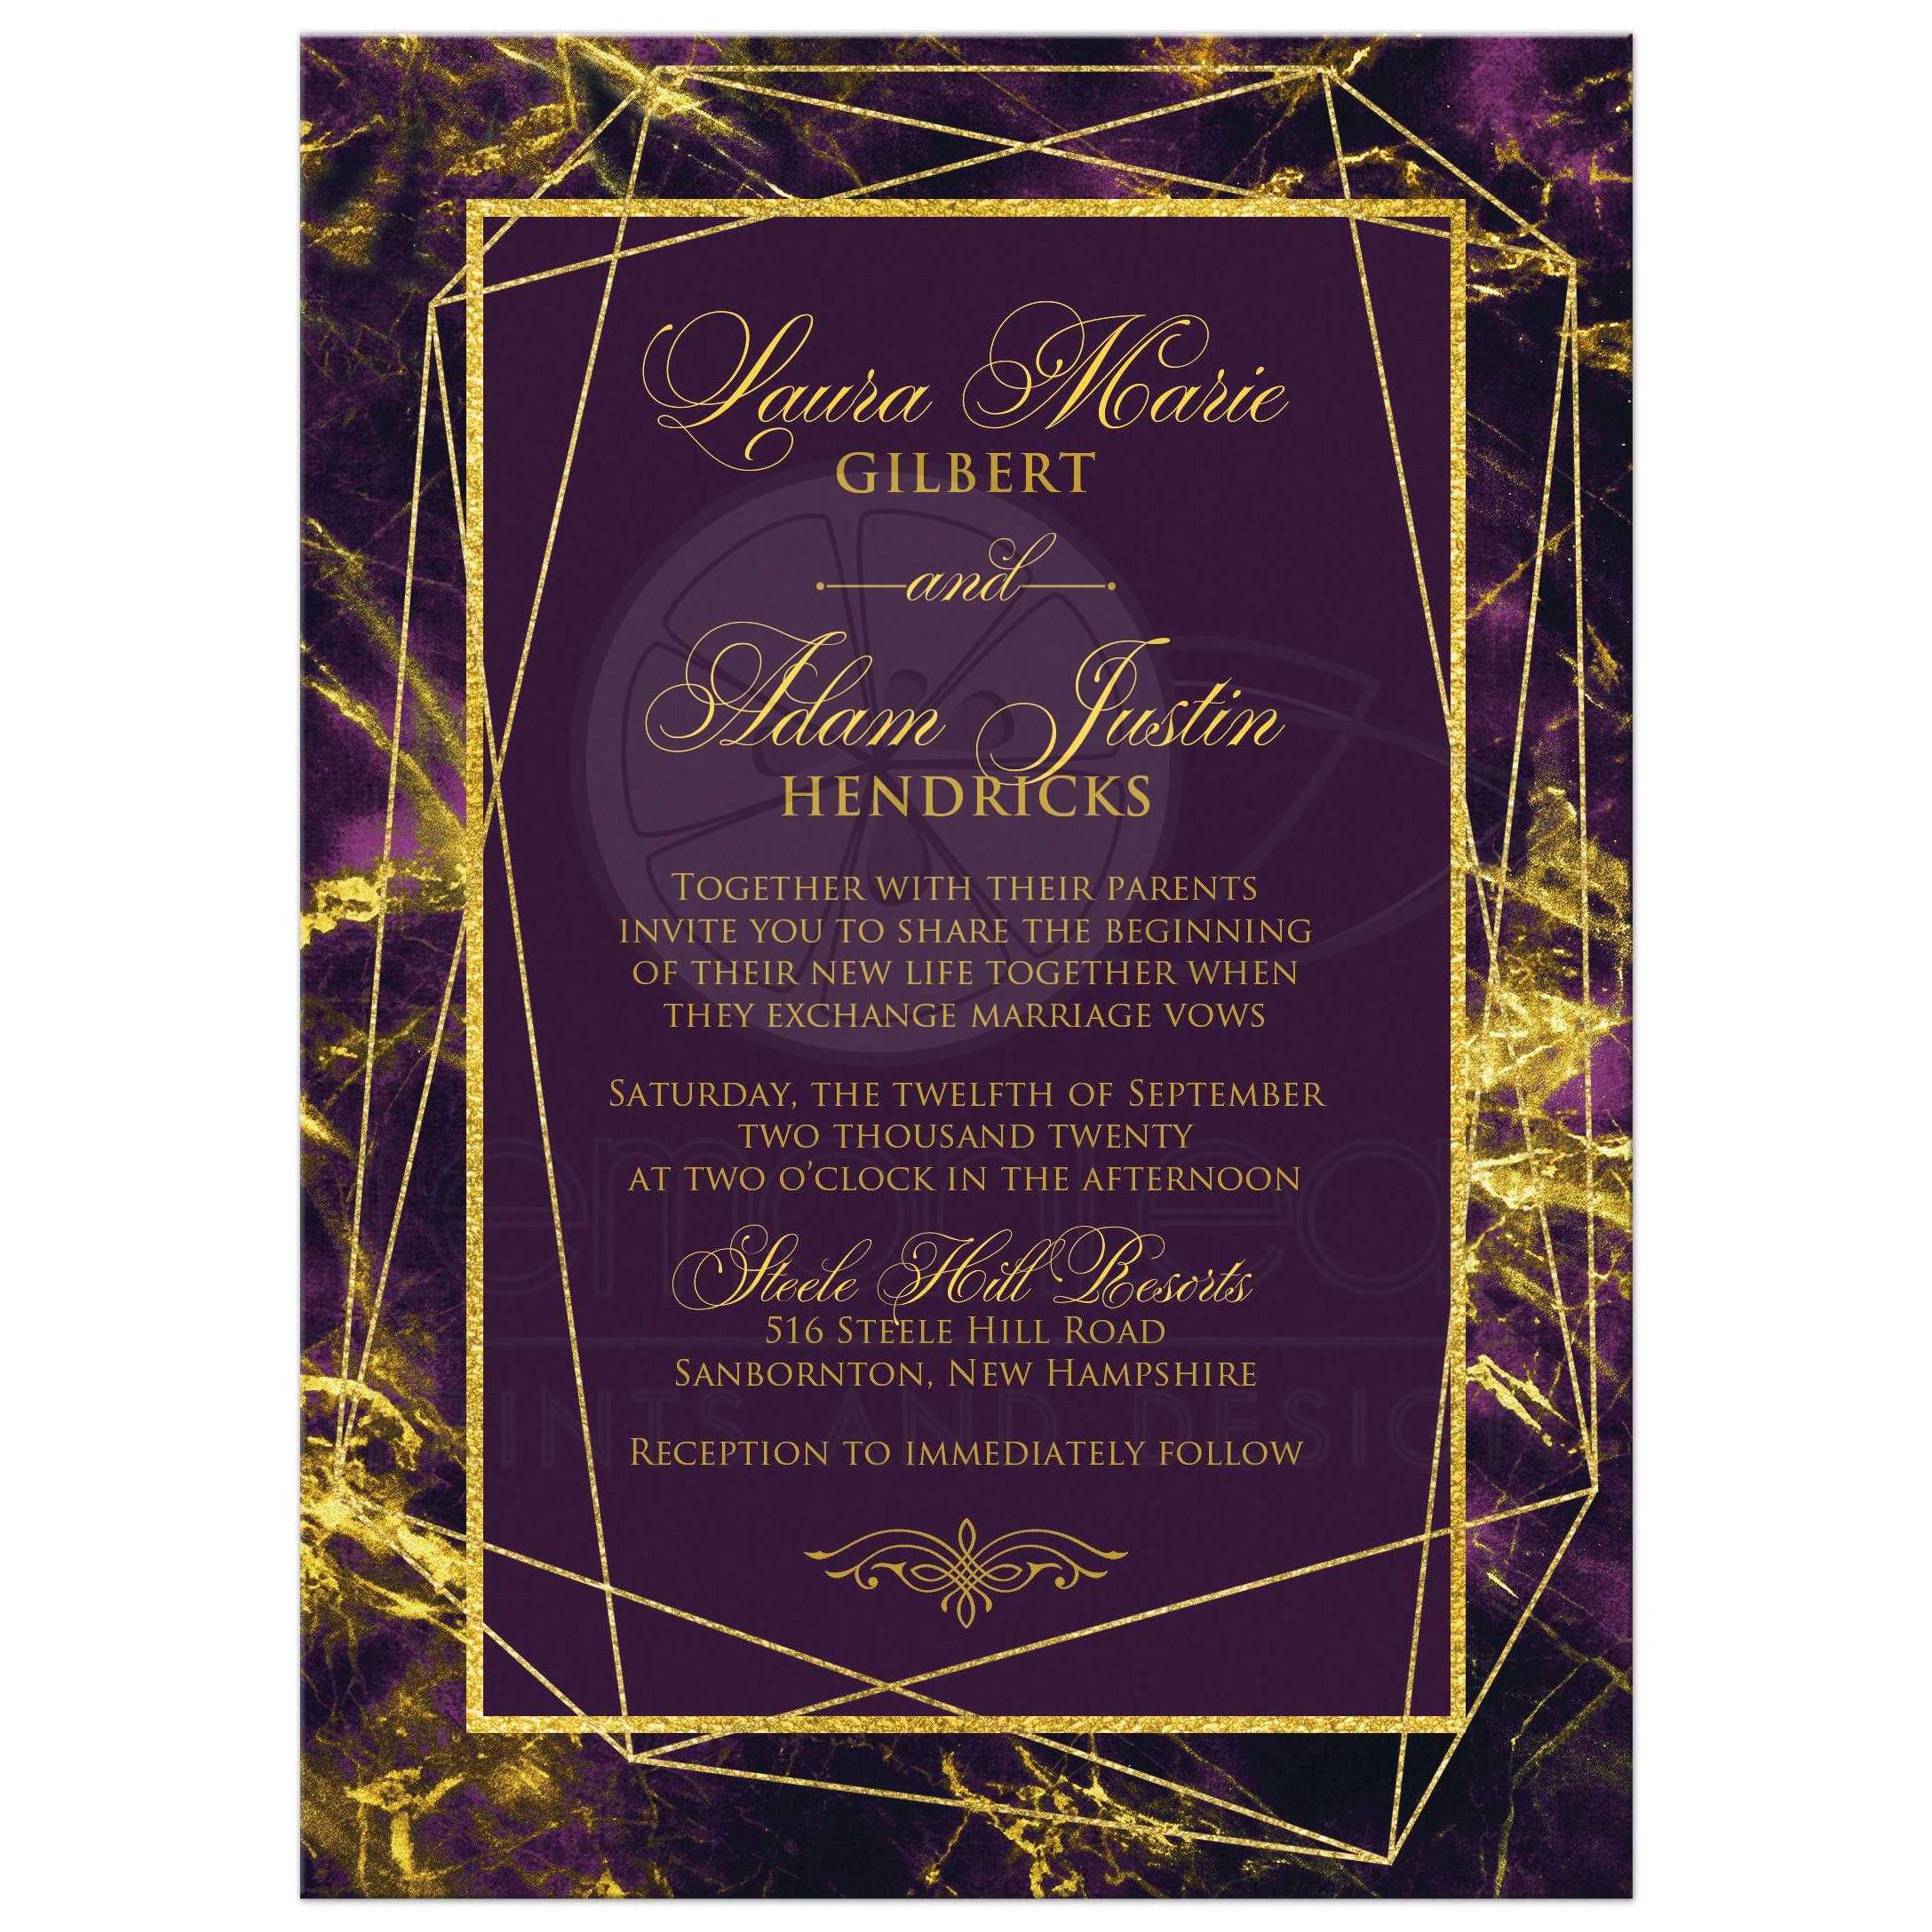 Gold And Purple Wedding Invitations: Purple, Gold Geometric Wedding Invitation With Marbled